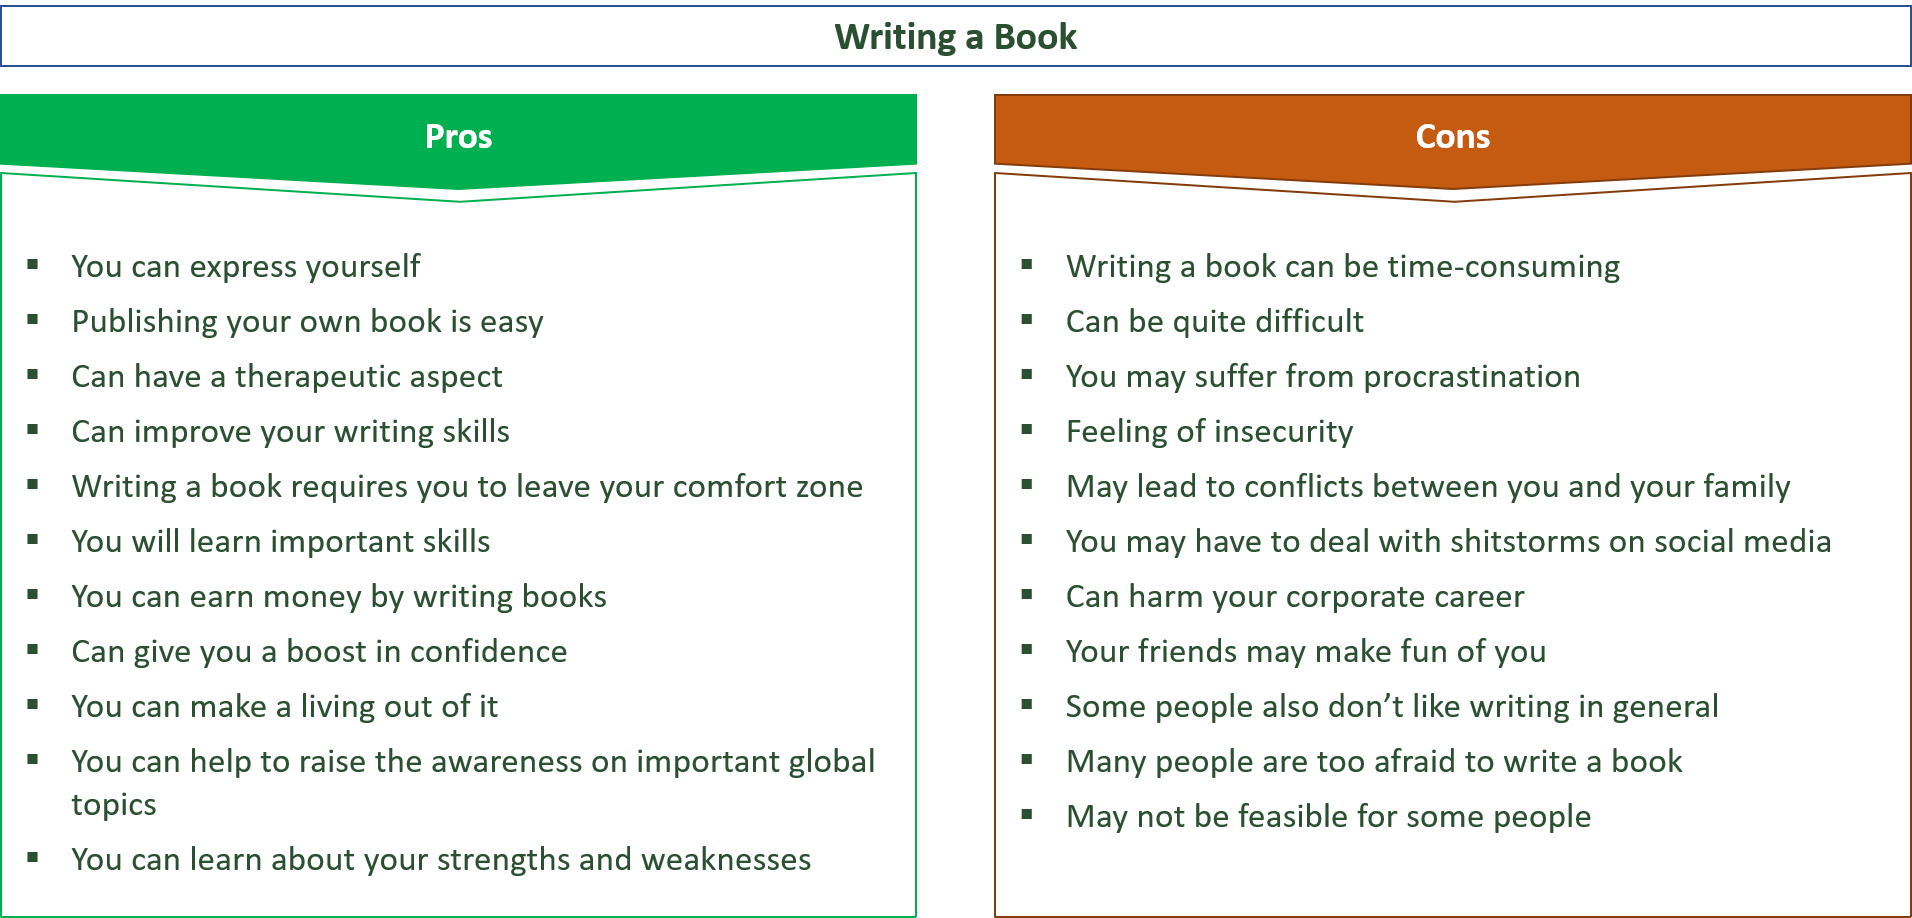 advantages and disadvantages of writing books